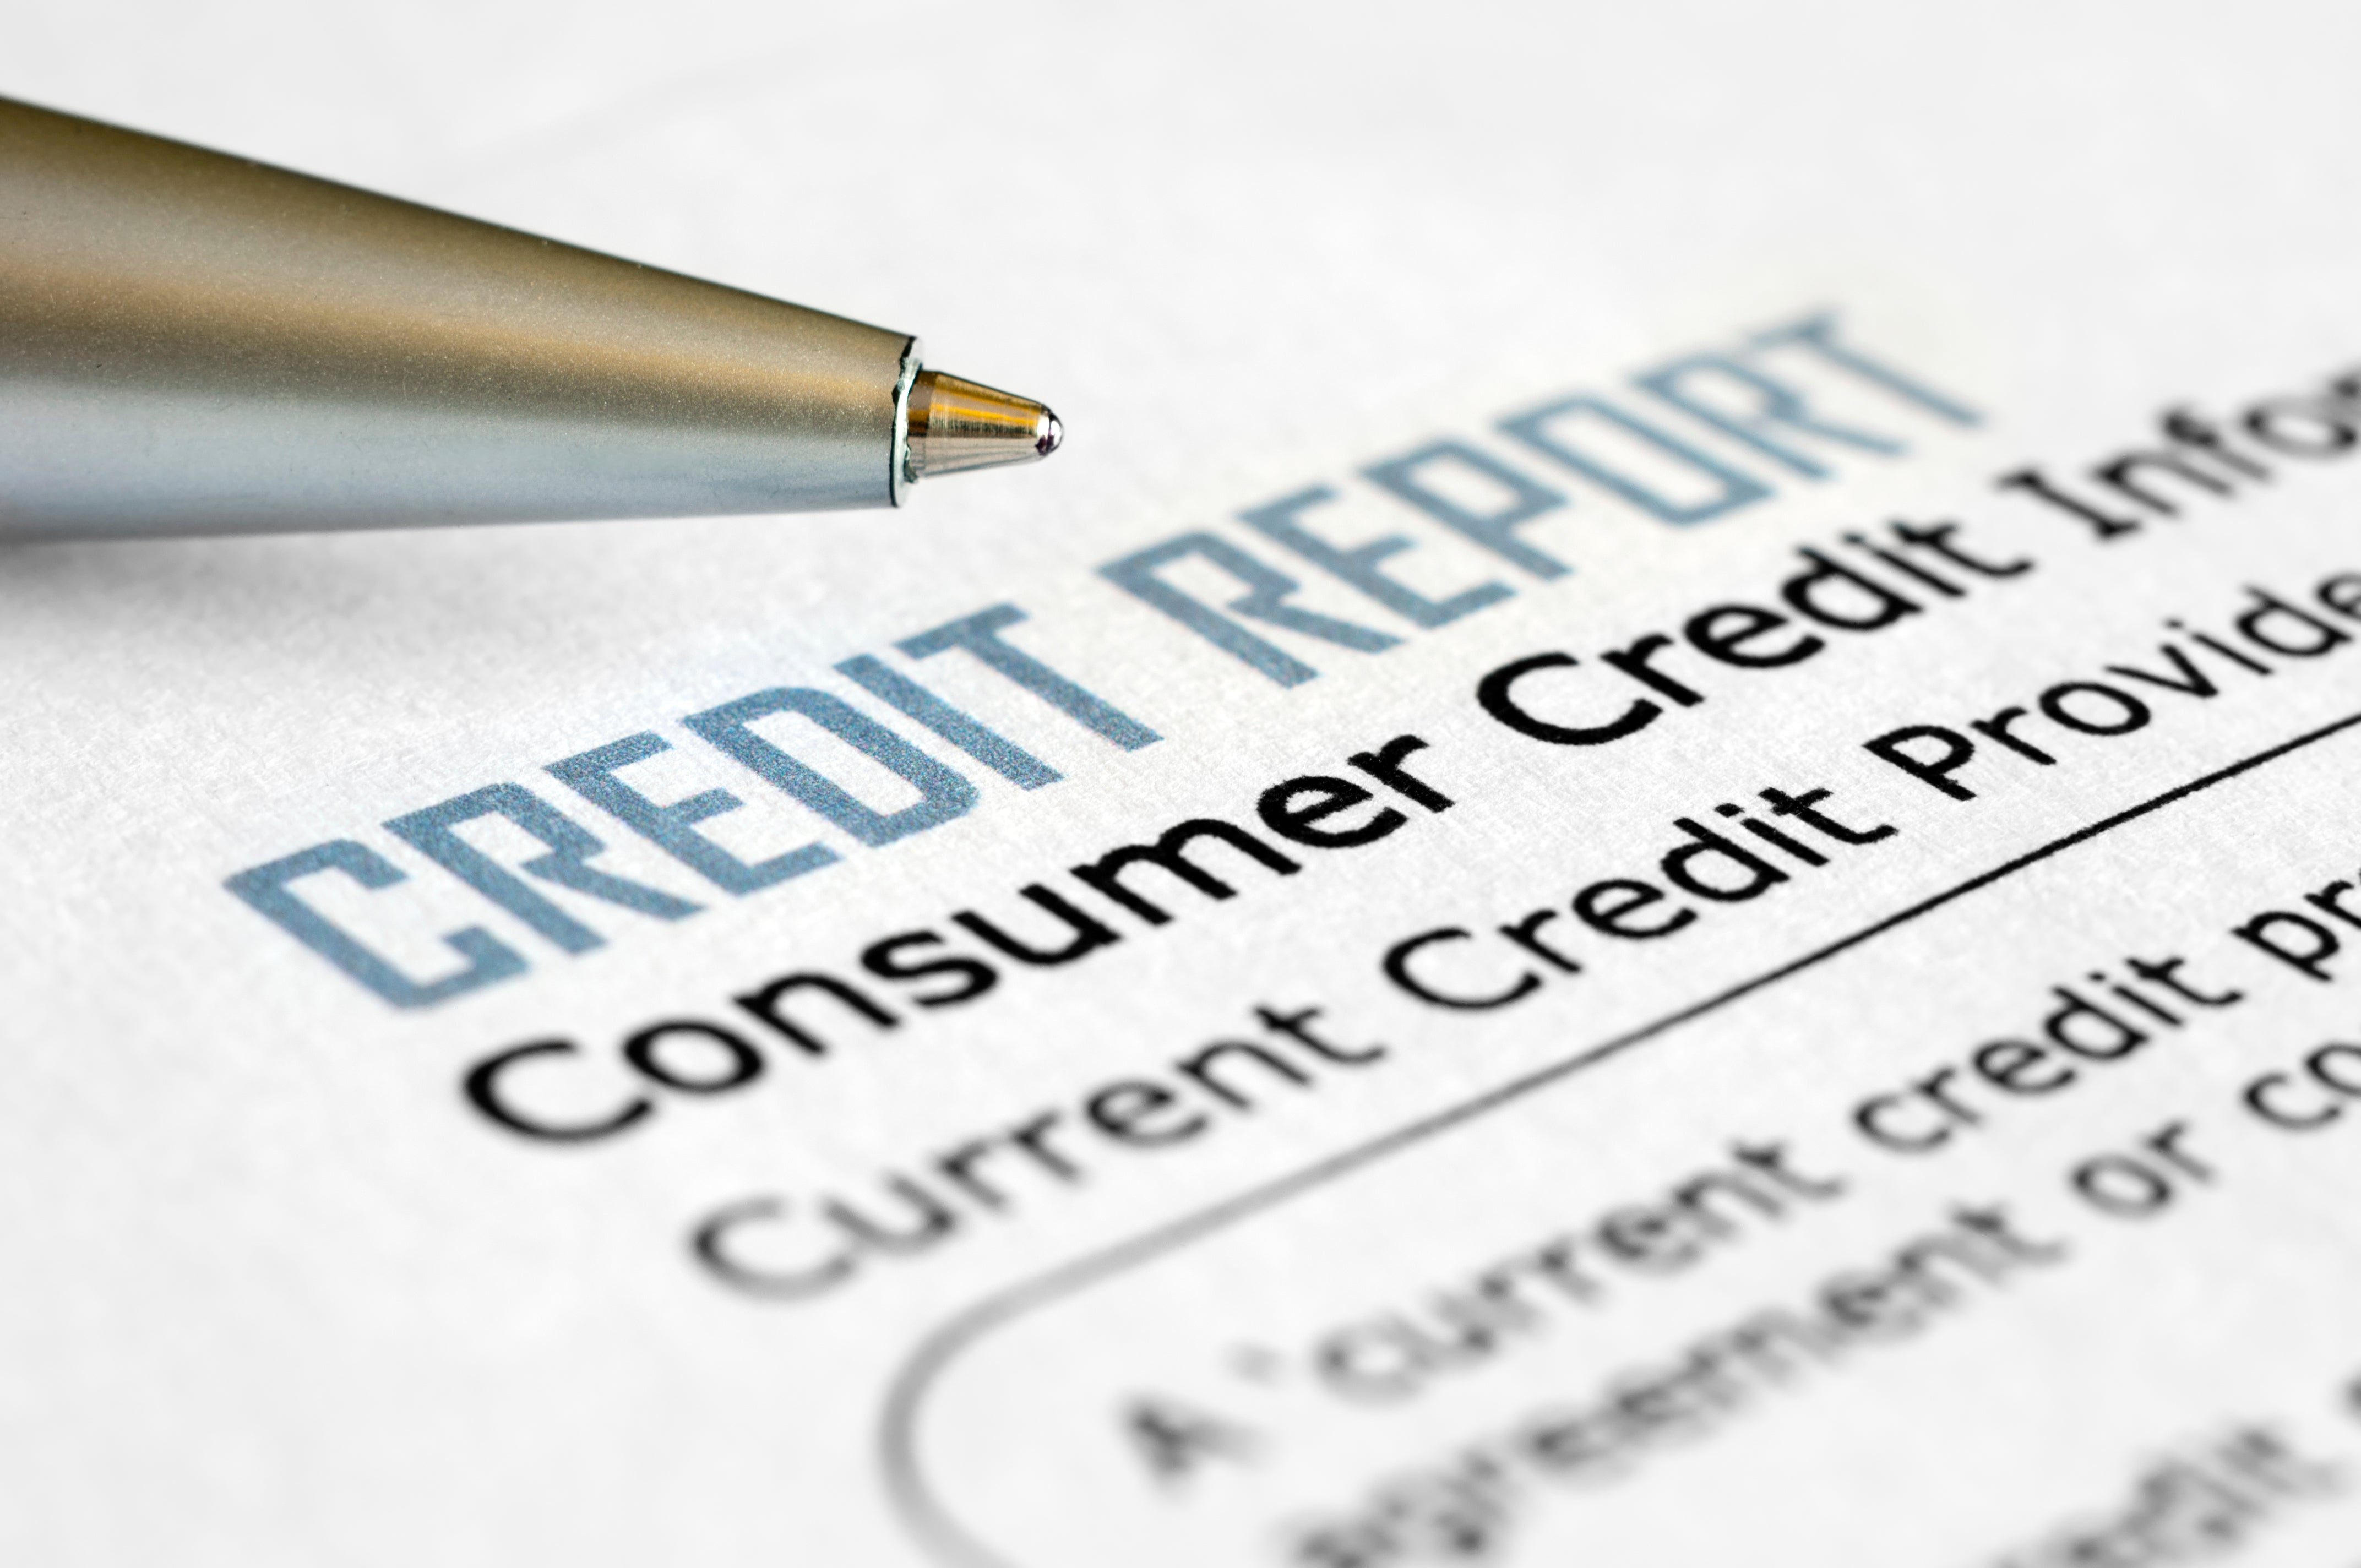 Is commercial debt on a credit report - Is Commercial Debt On A Credit Report 45